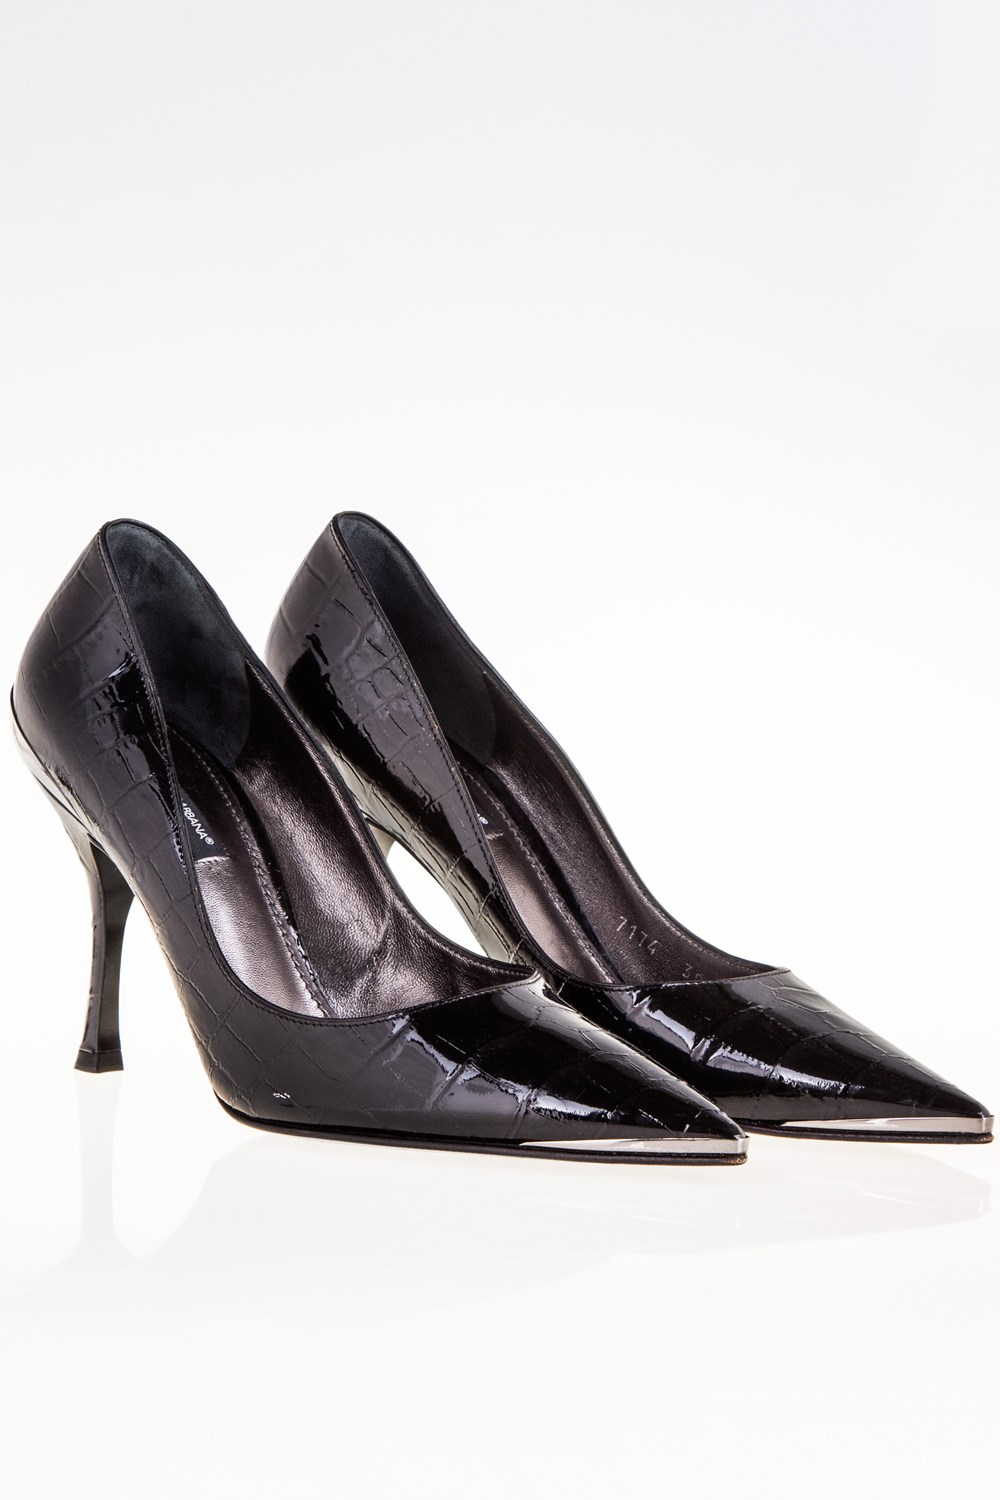 0cae8f3b9cf4 Dolce   Gabbana Black Patent Leather Pointed Toe Pumps   Size  38.5 - Fit   ...